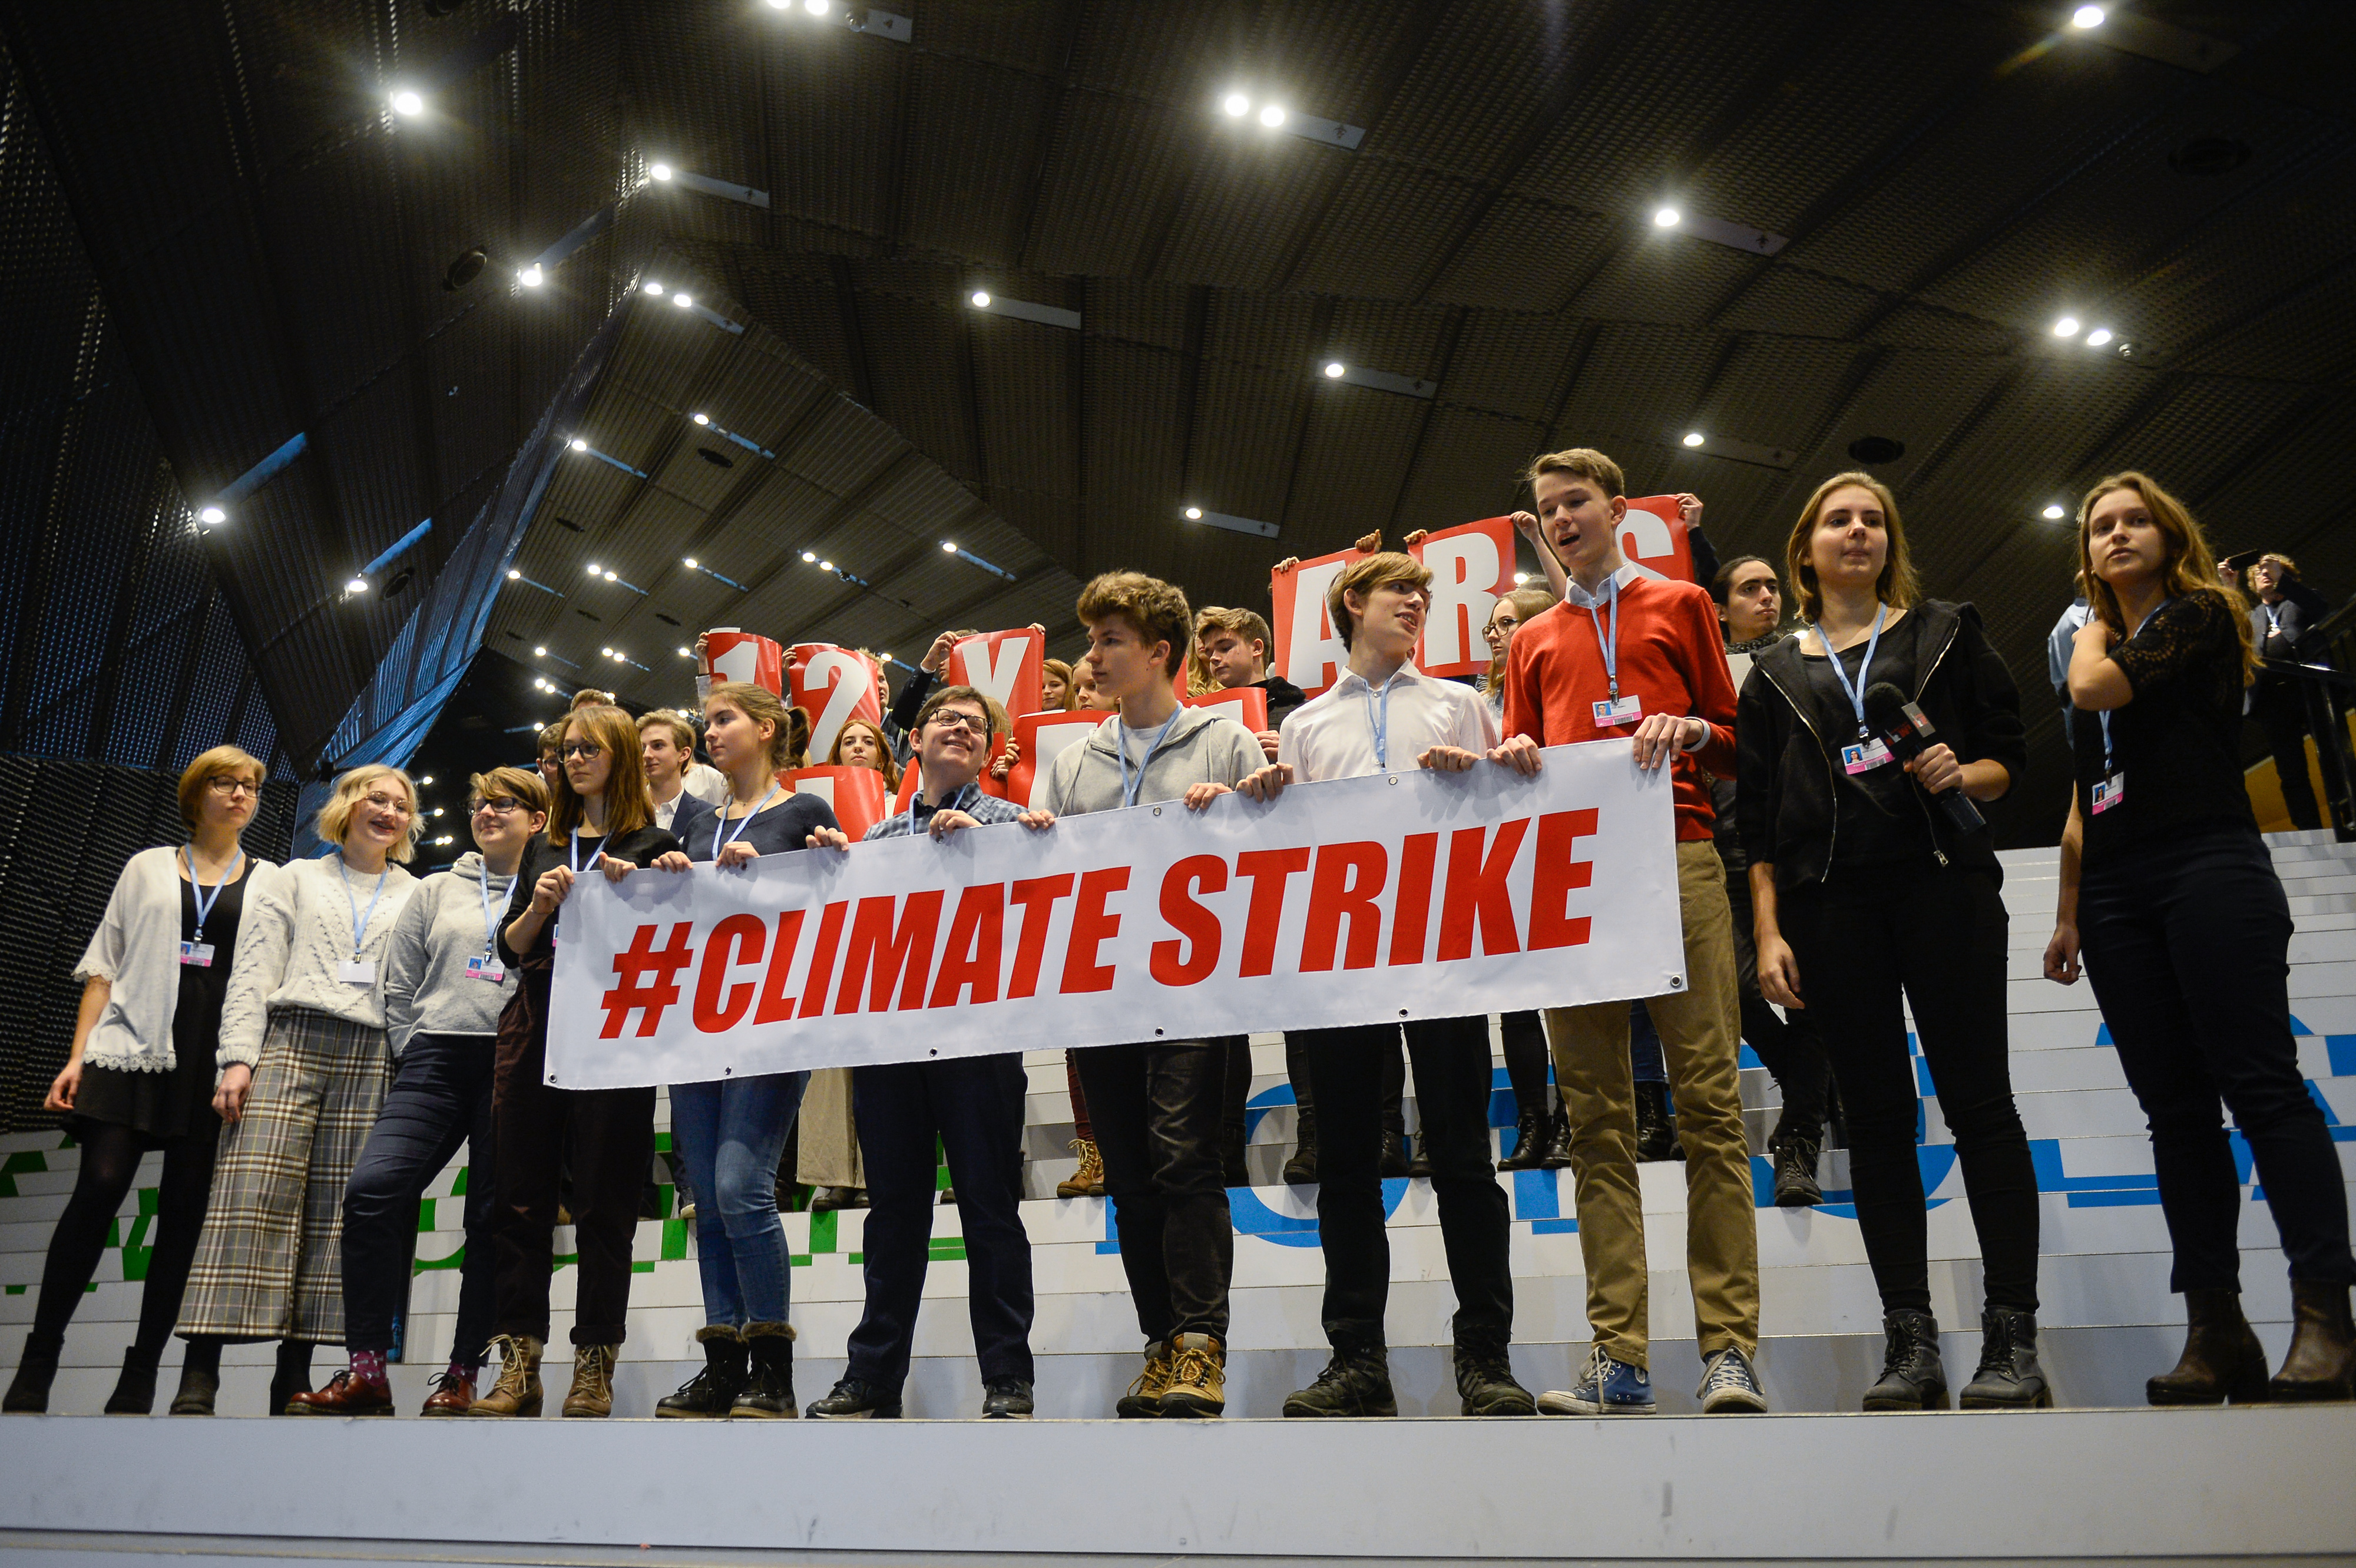 Polish students are seen holding a banner during a protest at the UN COP24 Climate Change conference, in solidarity with 15-year-old activist Greta Thunberg.